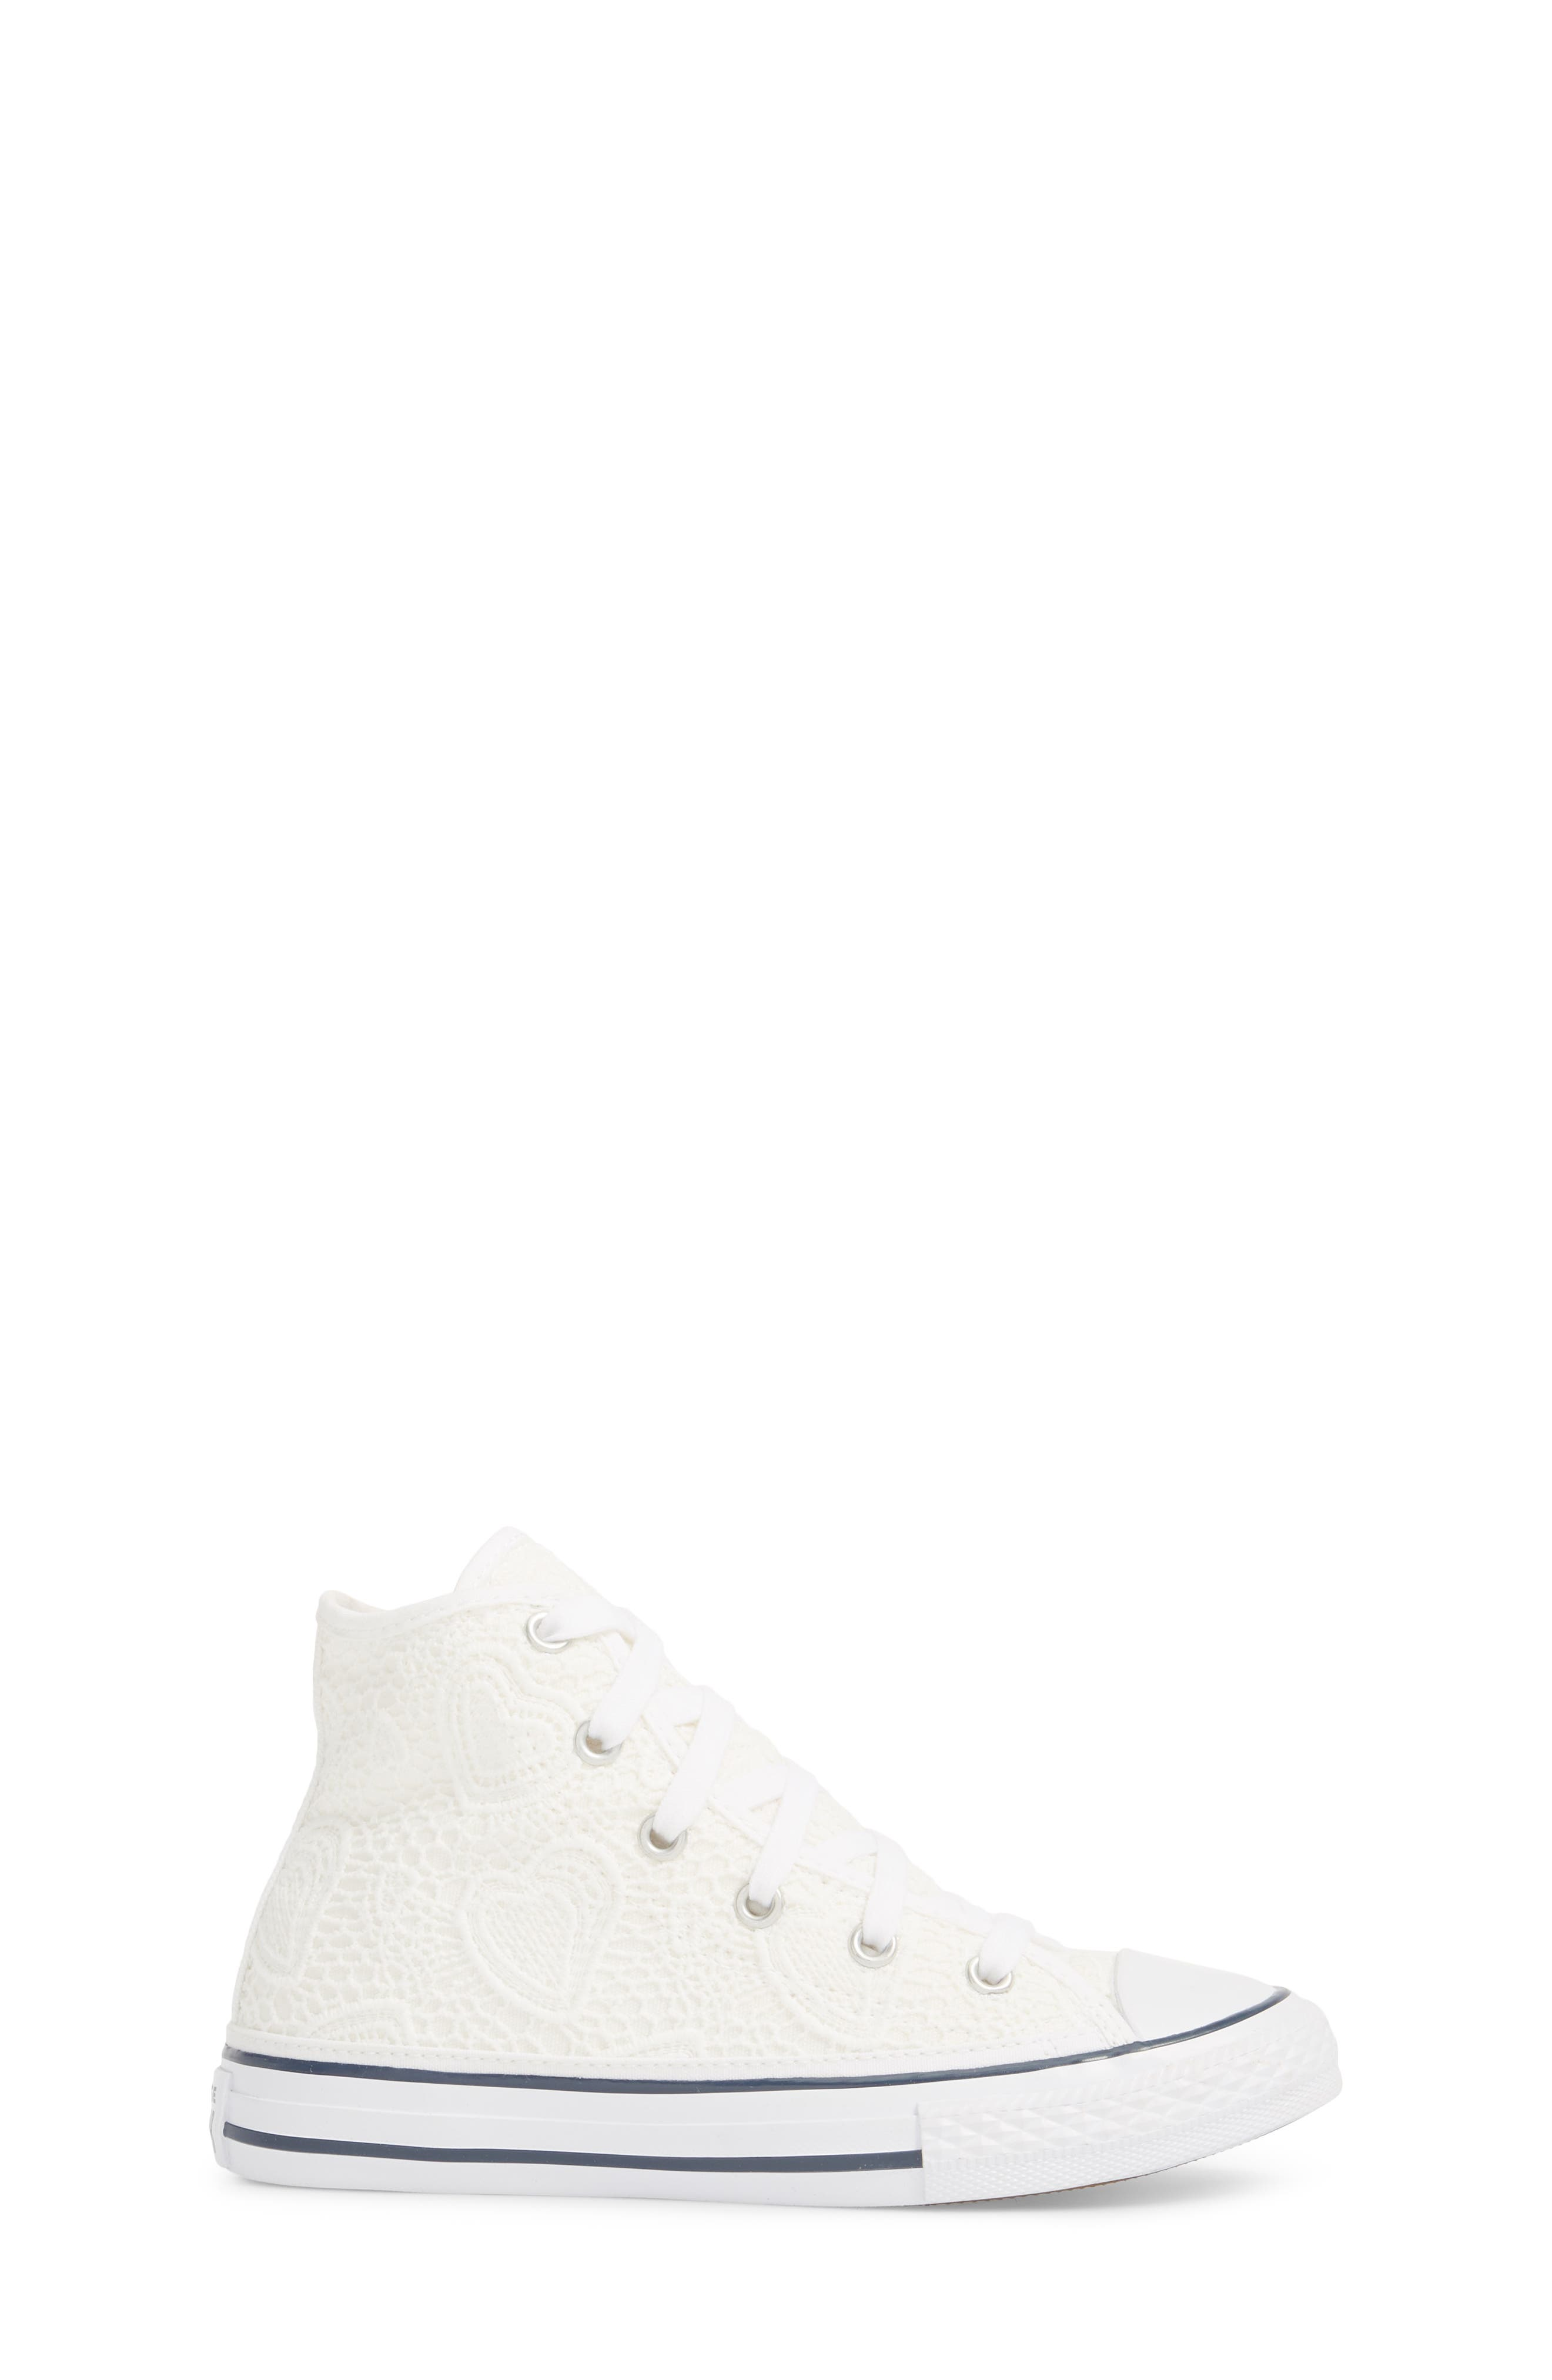 Chuck Taylor<sup>®</sup> All Star<sup>®</sup> Crochet High Top Sneaker,                             Alternate thumbnail 3, color,                             102